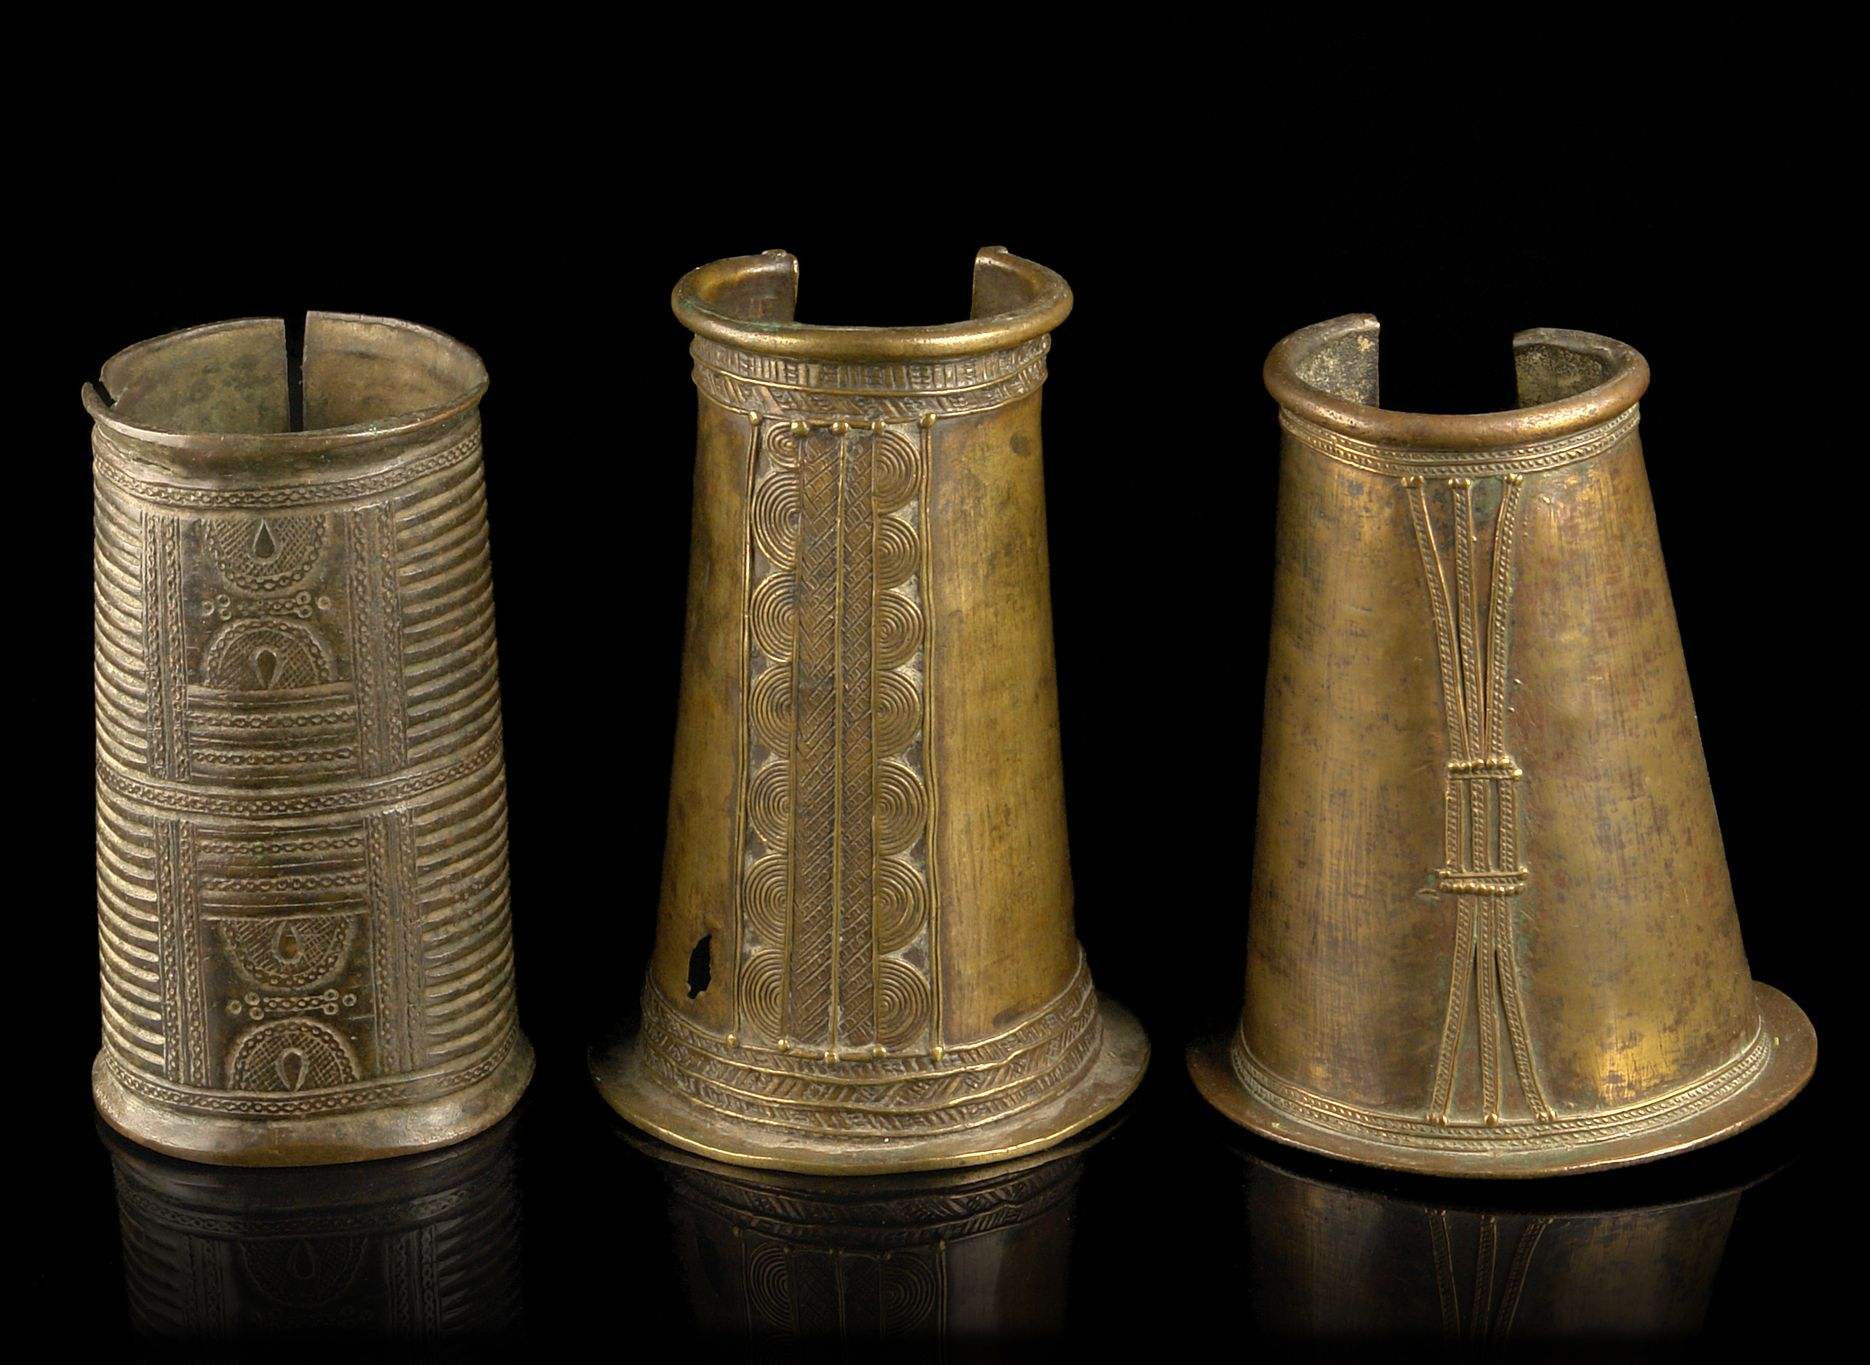 Africa | Three brass cuffs from West Africa | Left) From the Igbo people of Nigeria. Center and Right) From Burkina Faso | 450€ for the lot ~ sold